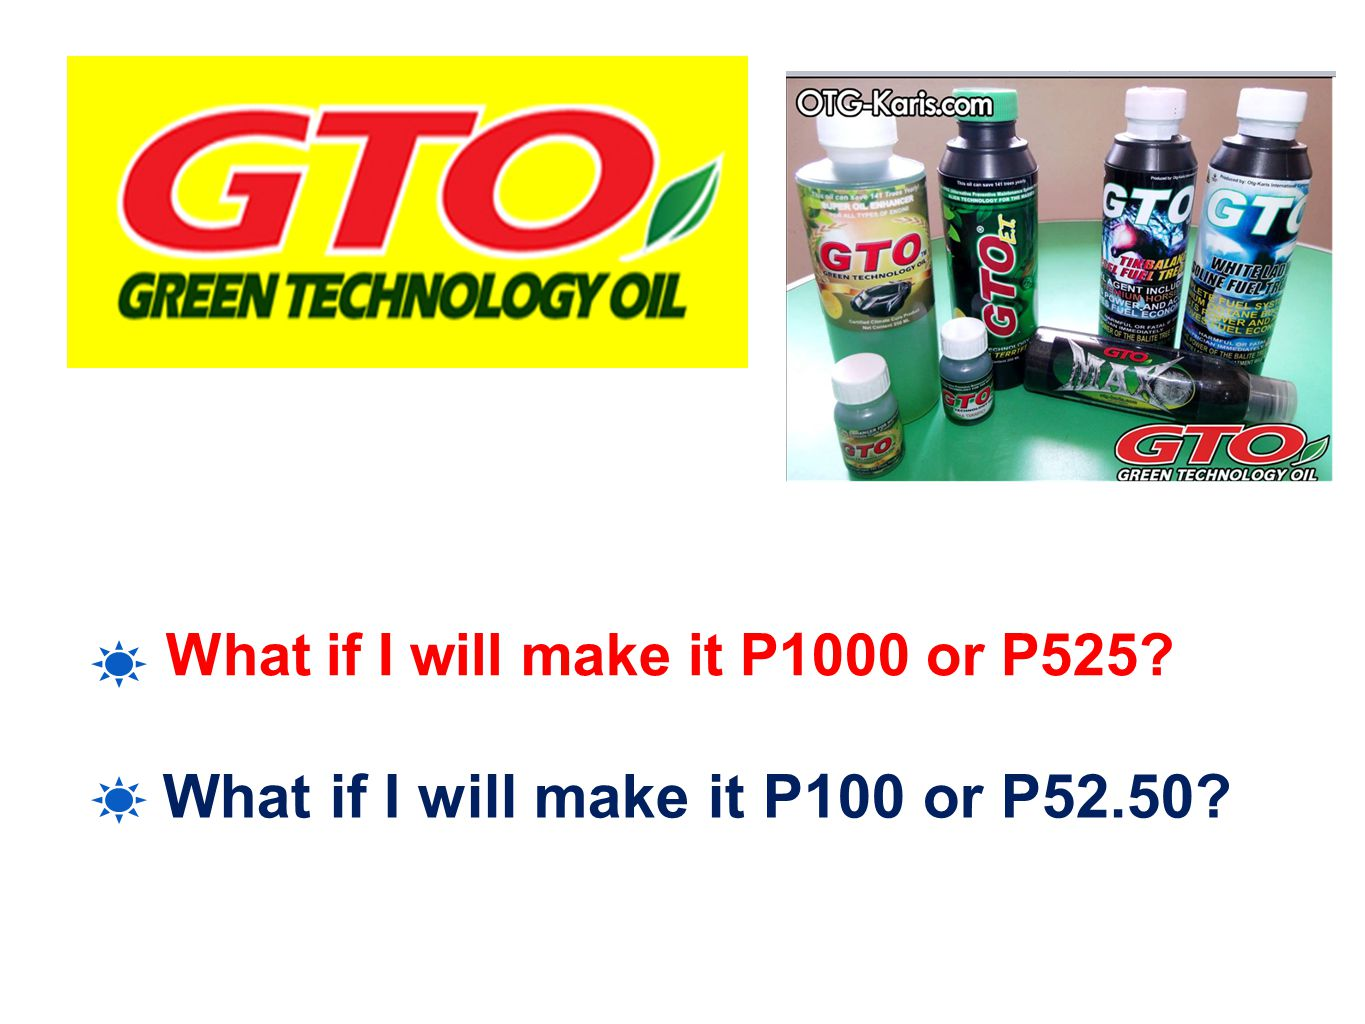 What if I will make it P100 or P52.50